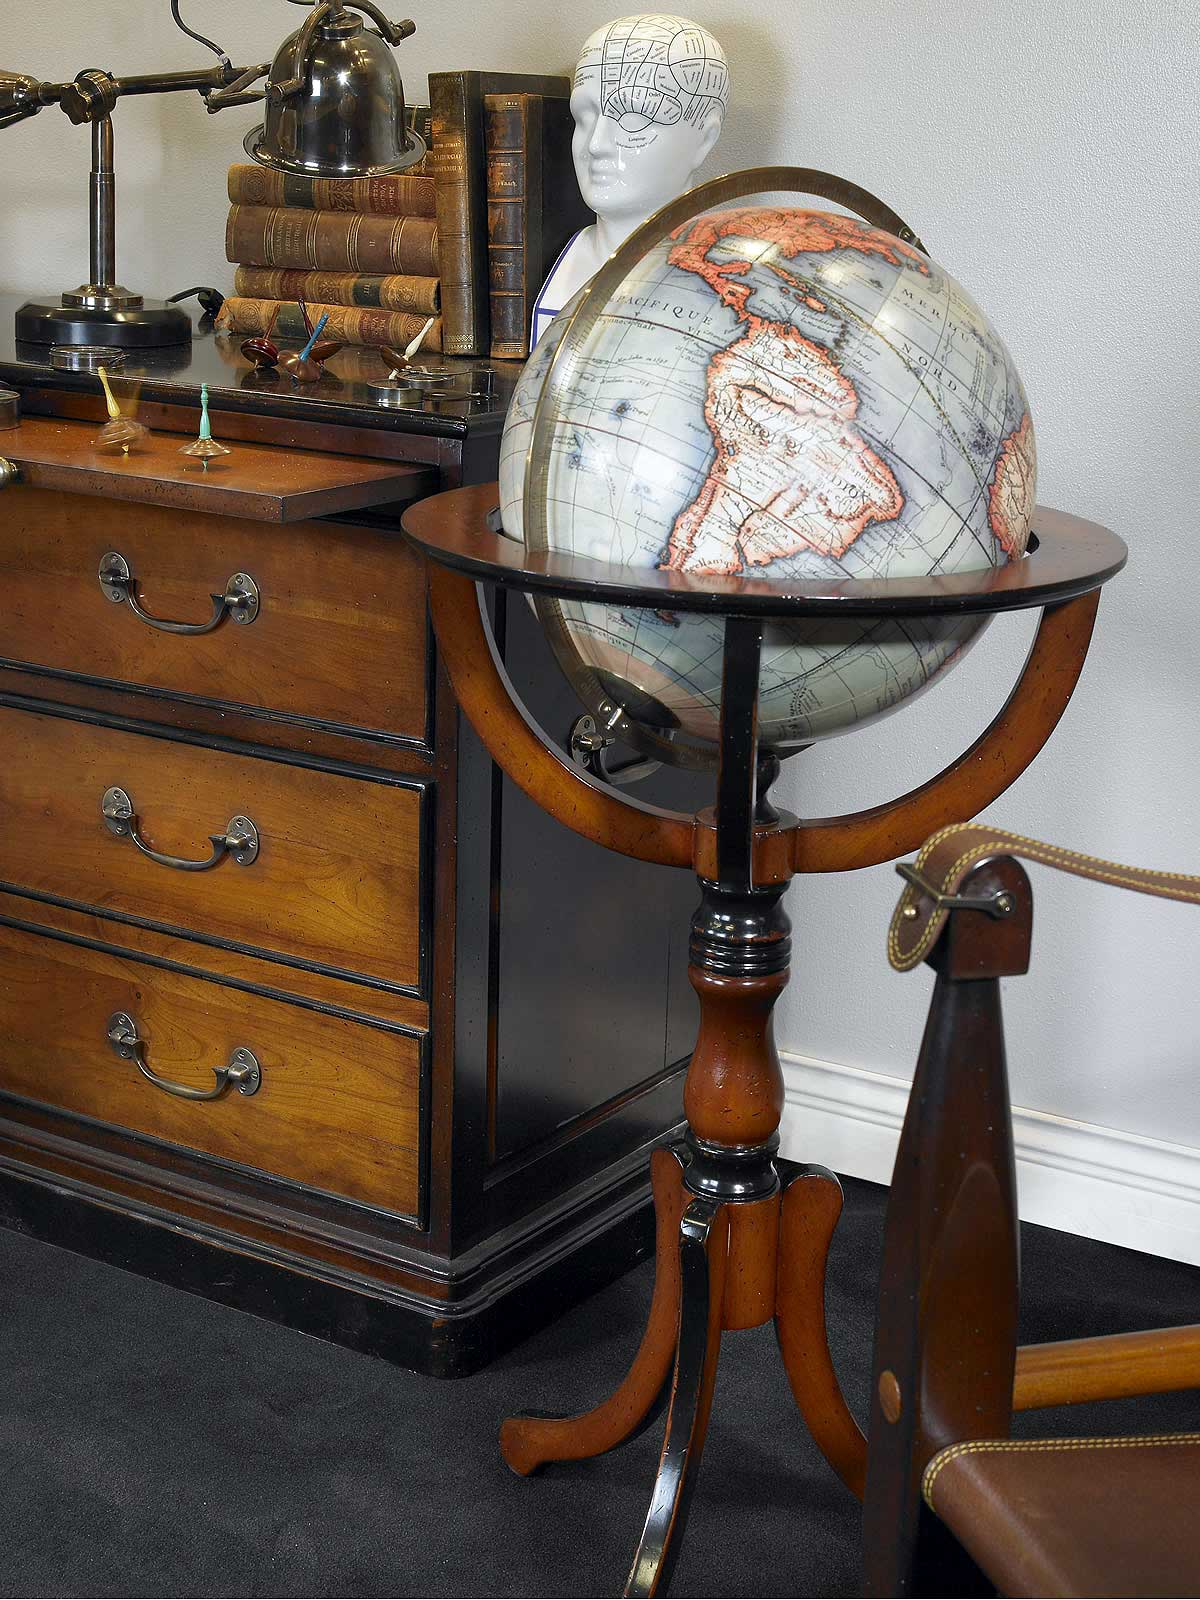 Antique Library Globe (reproduction) or old globe or historical globe